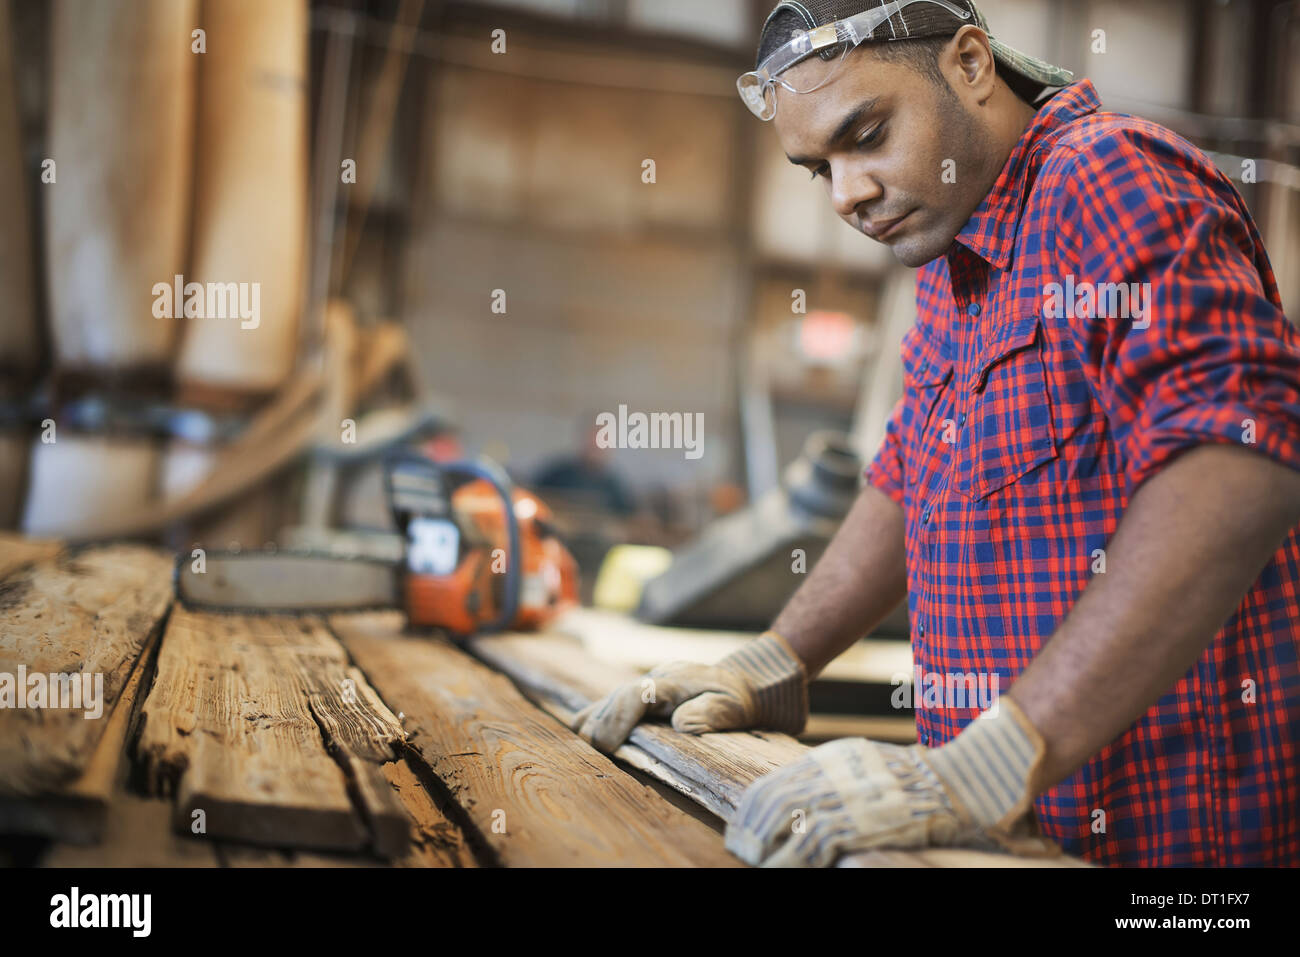 A reclaimed lumber workshop A man measuring and checking planks of wood for re-use and recycling - Stock Image